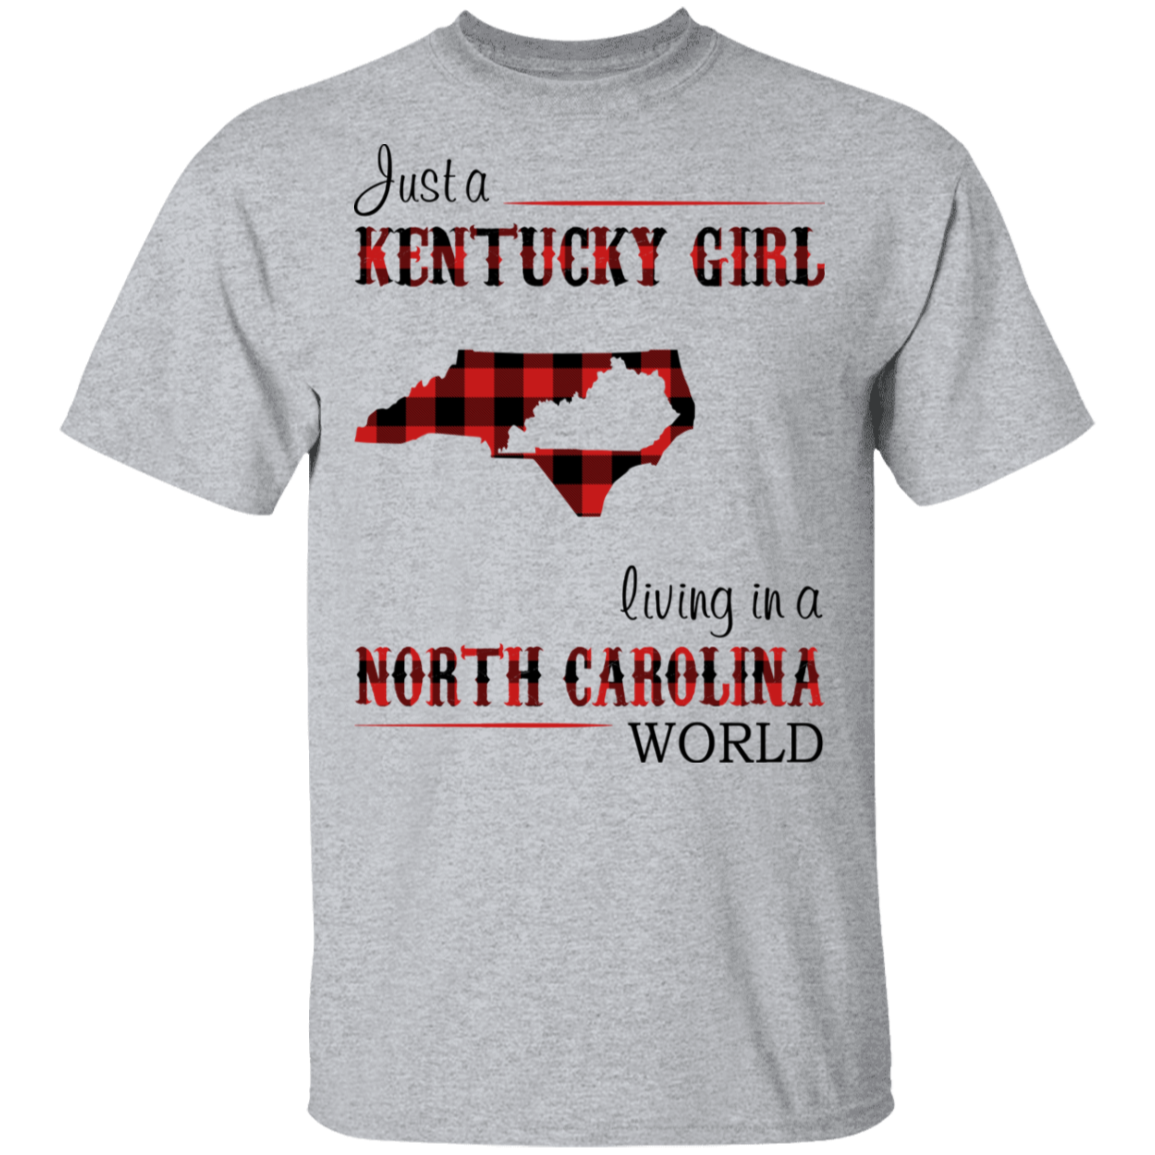 JUST A KENTUCKY GIRL LIVING IN A NORTH CAROLINA WORLD